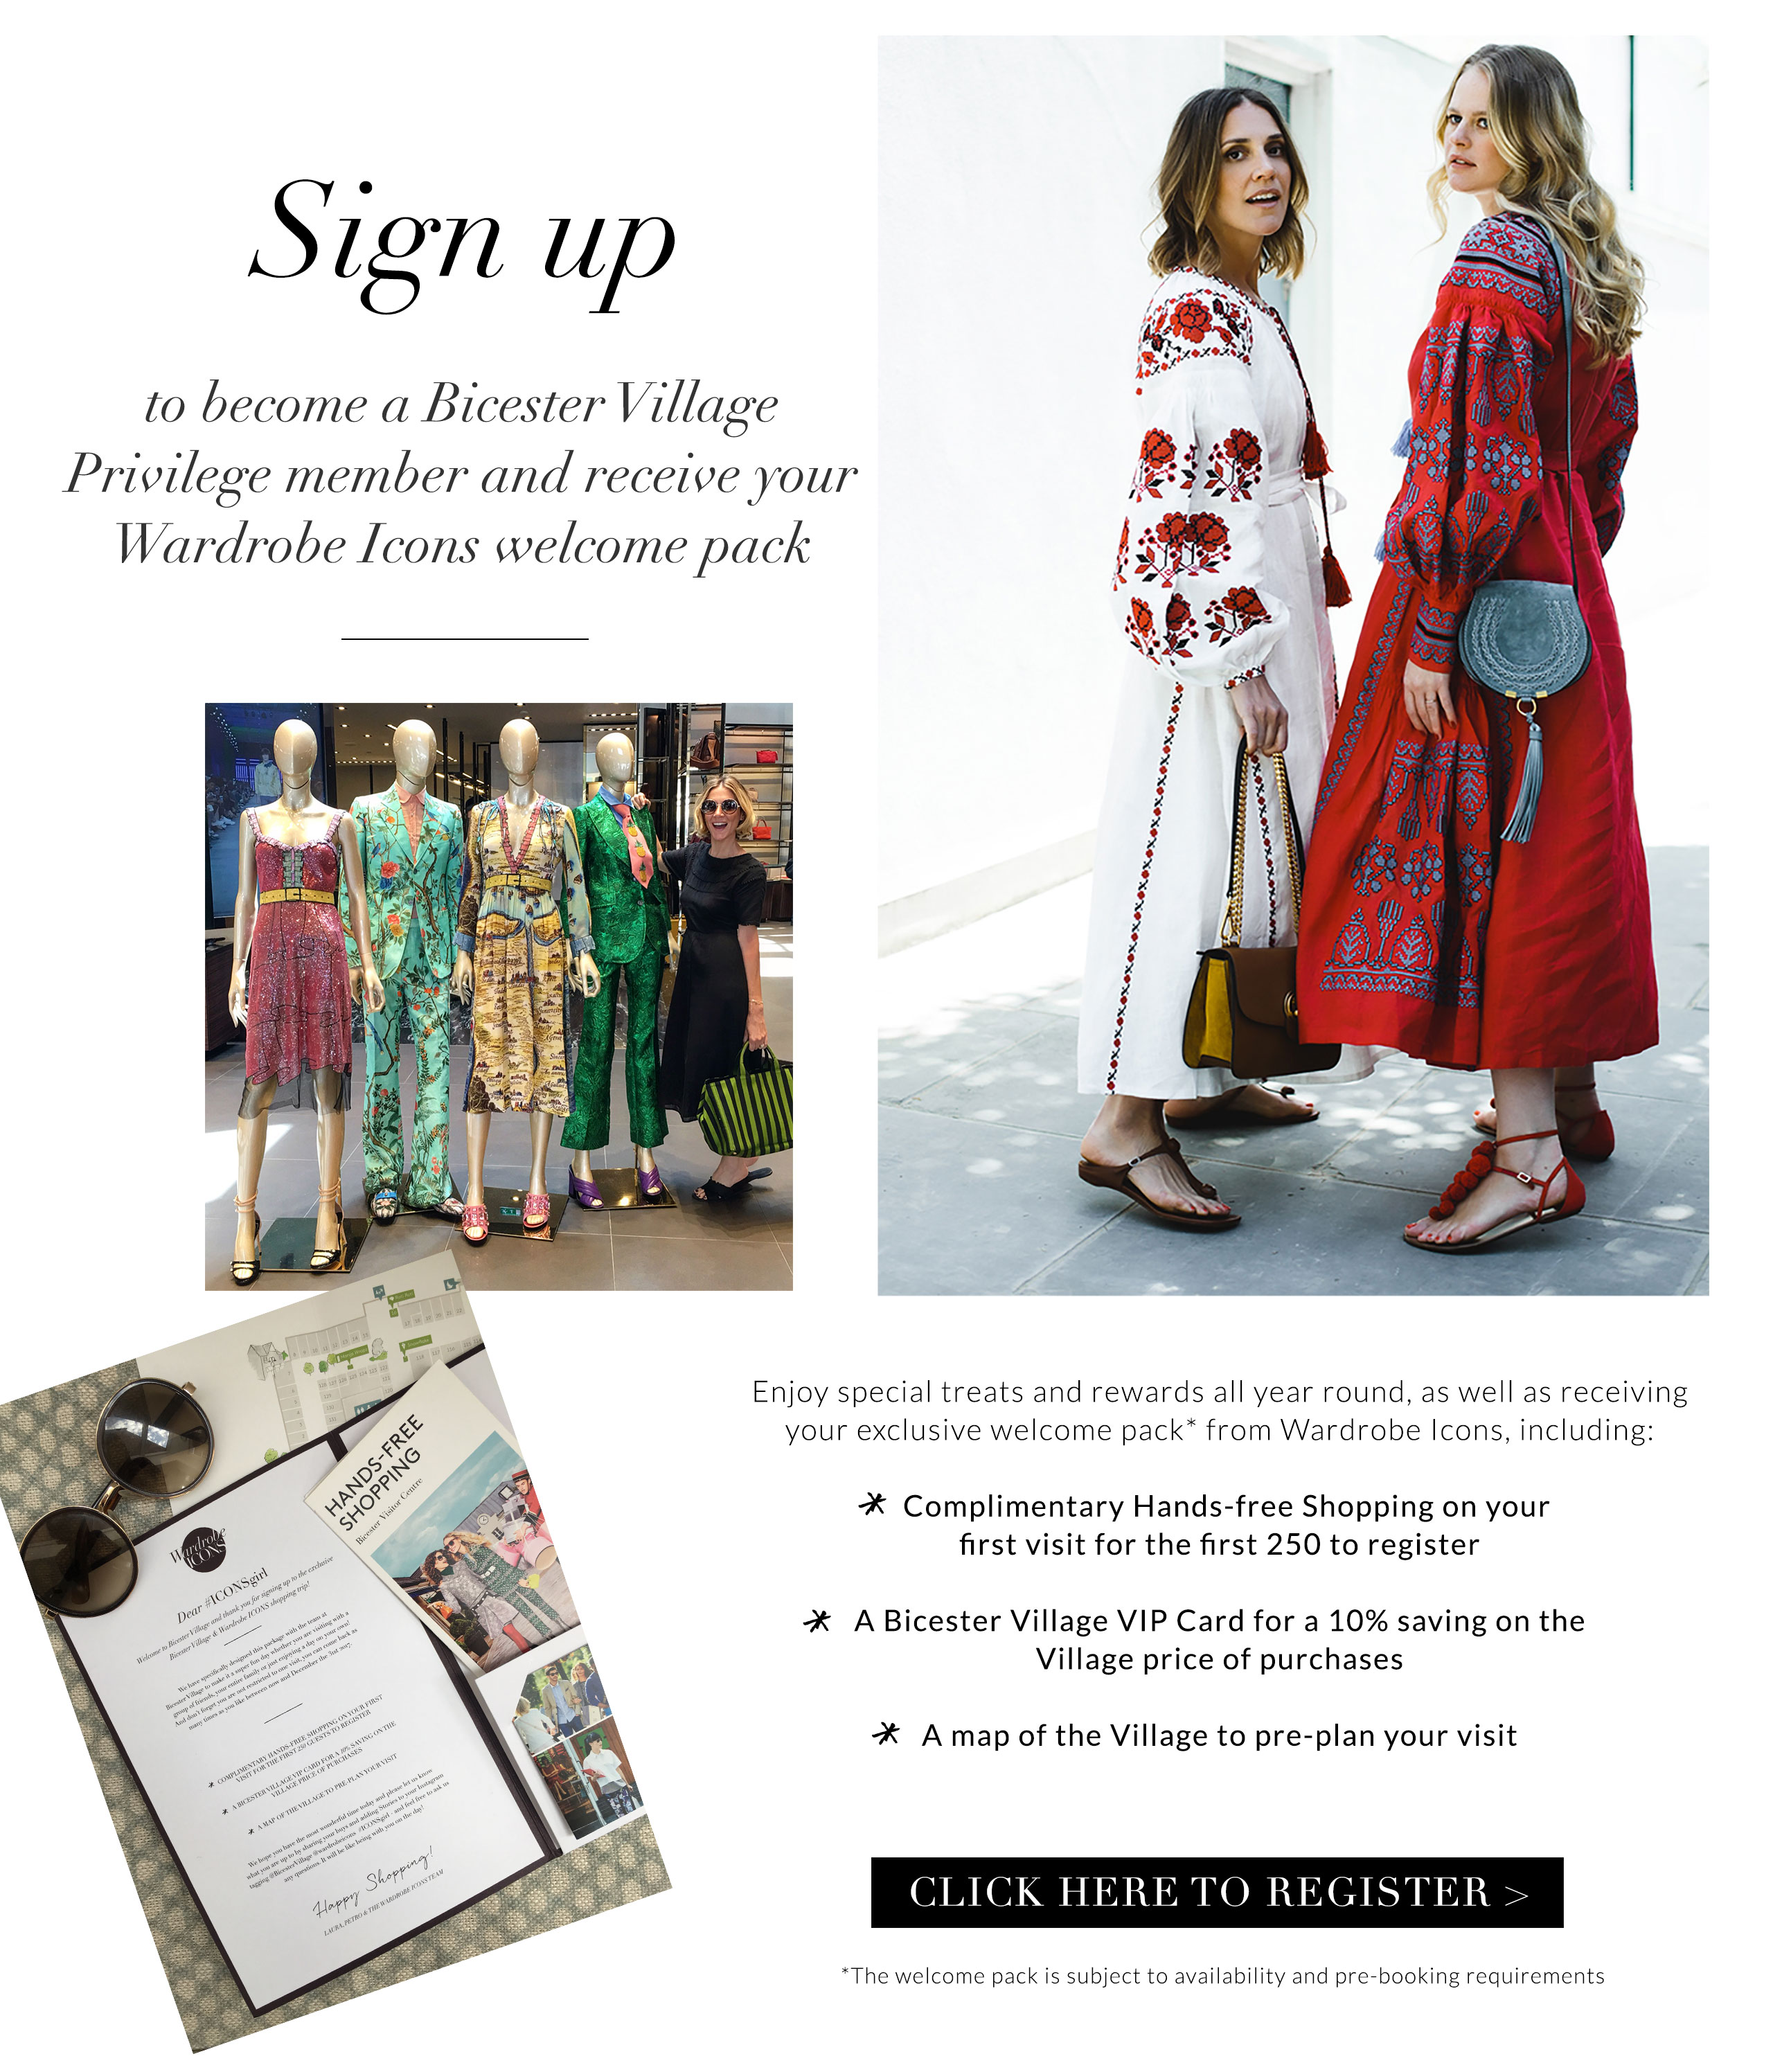 Click to sign up to Bicester Village x Wardrobe ICONS promotion